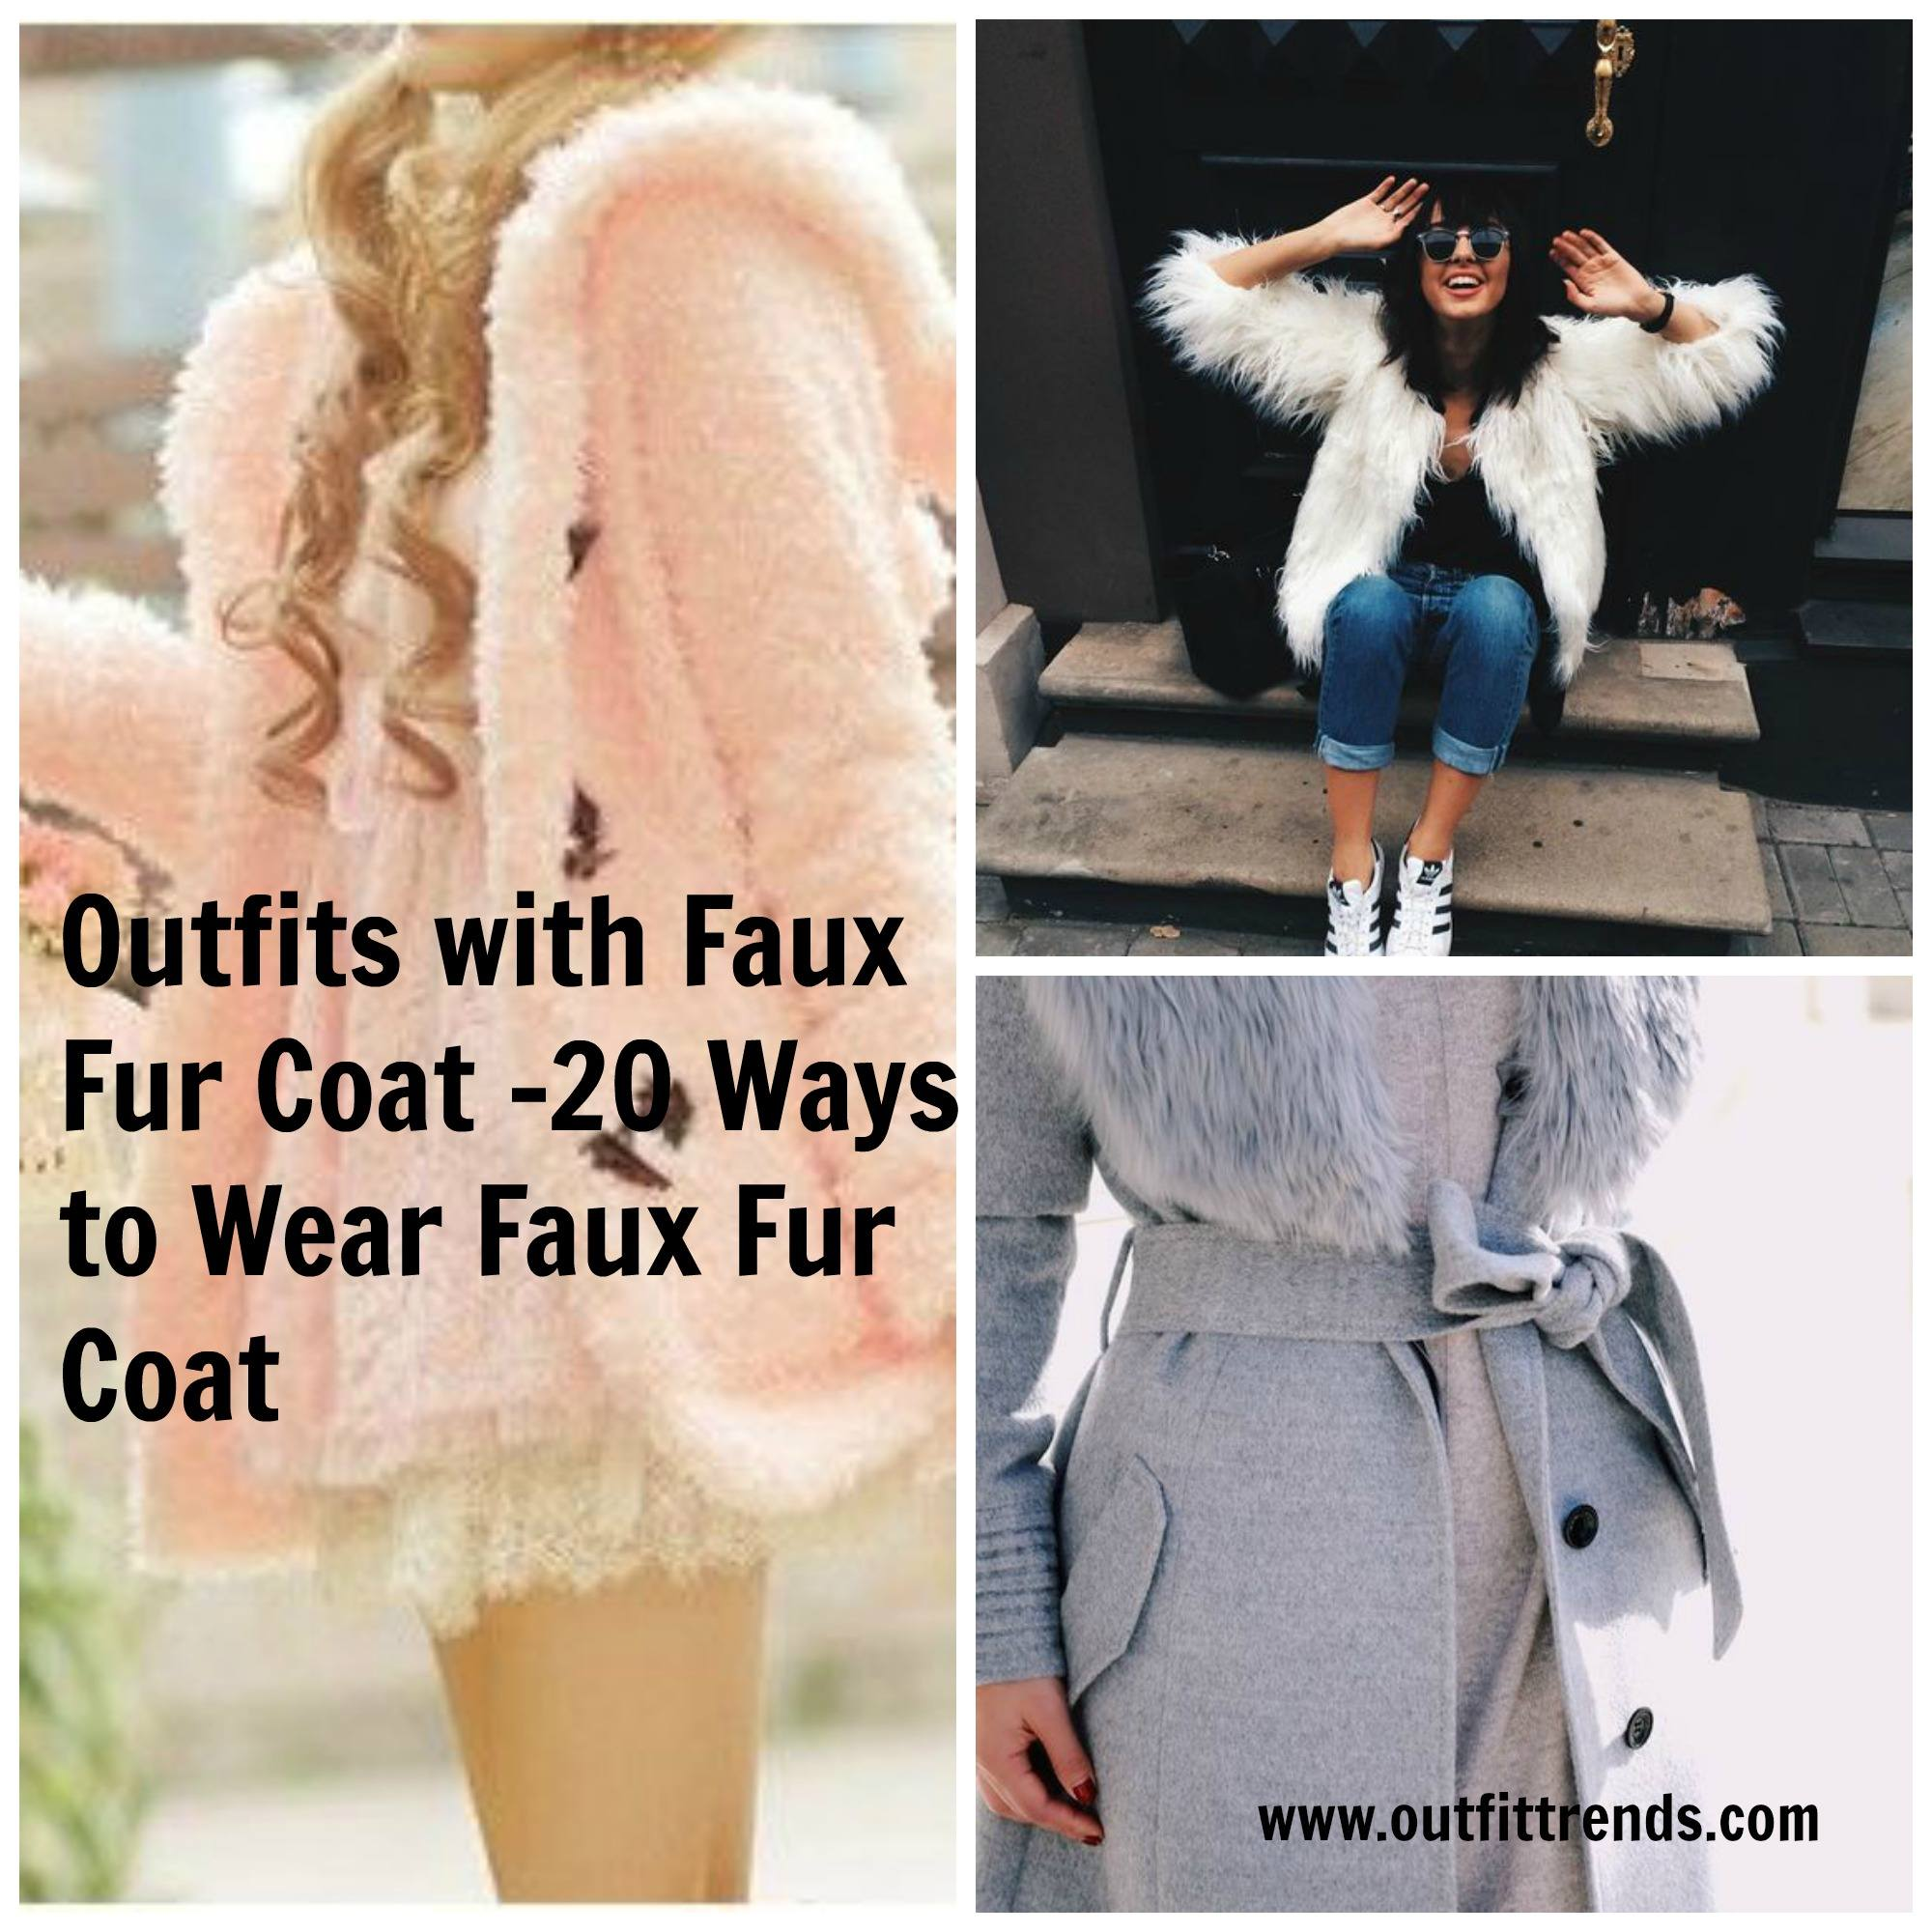 Outfits with Faux Fur Coat – 20 Ways to Wear Faux Fur Coat